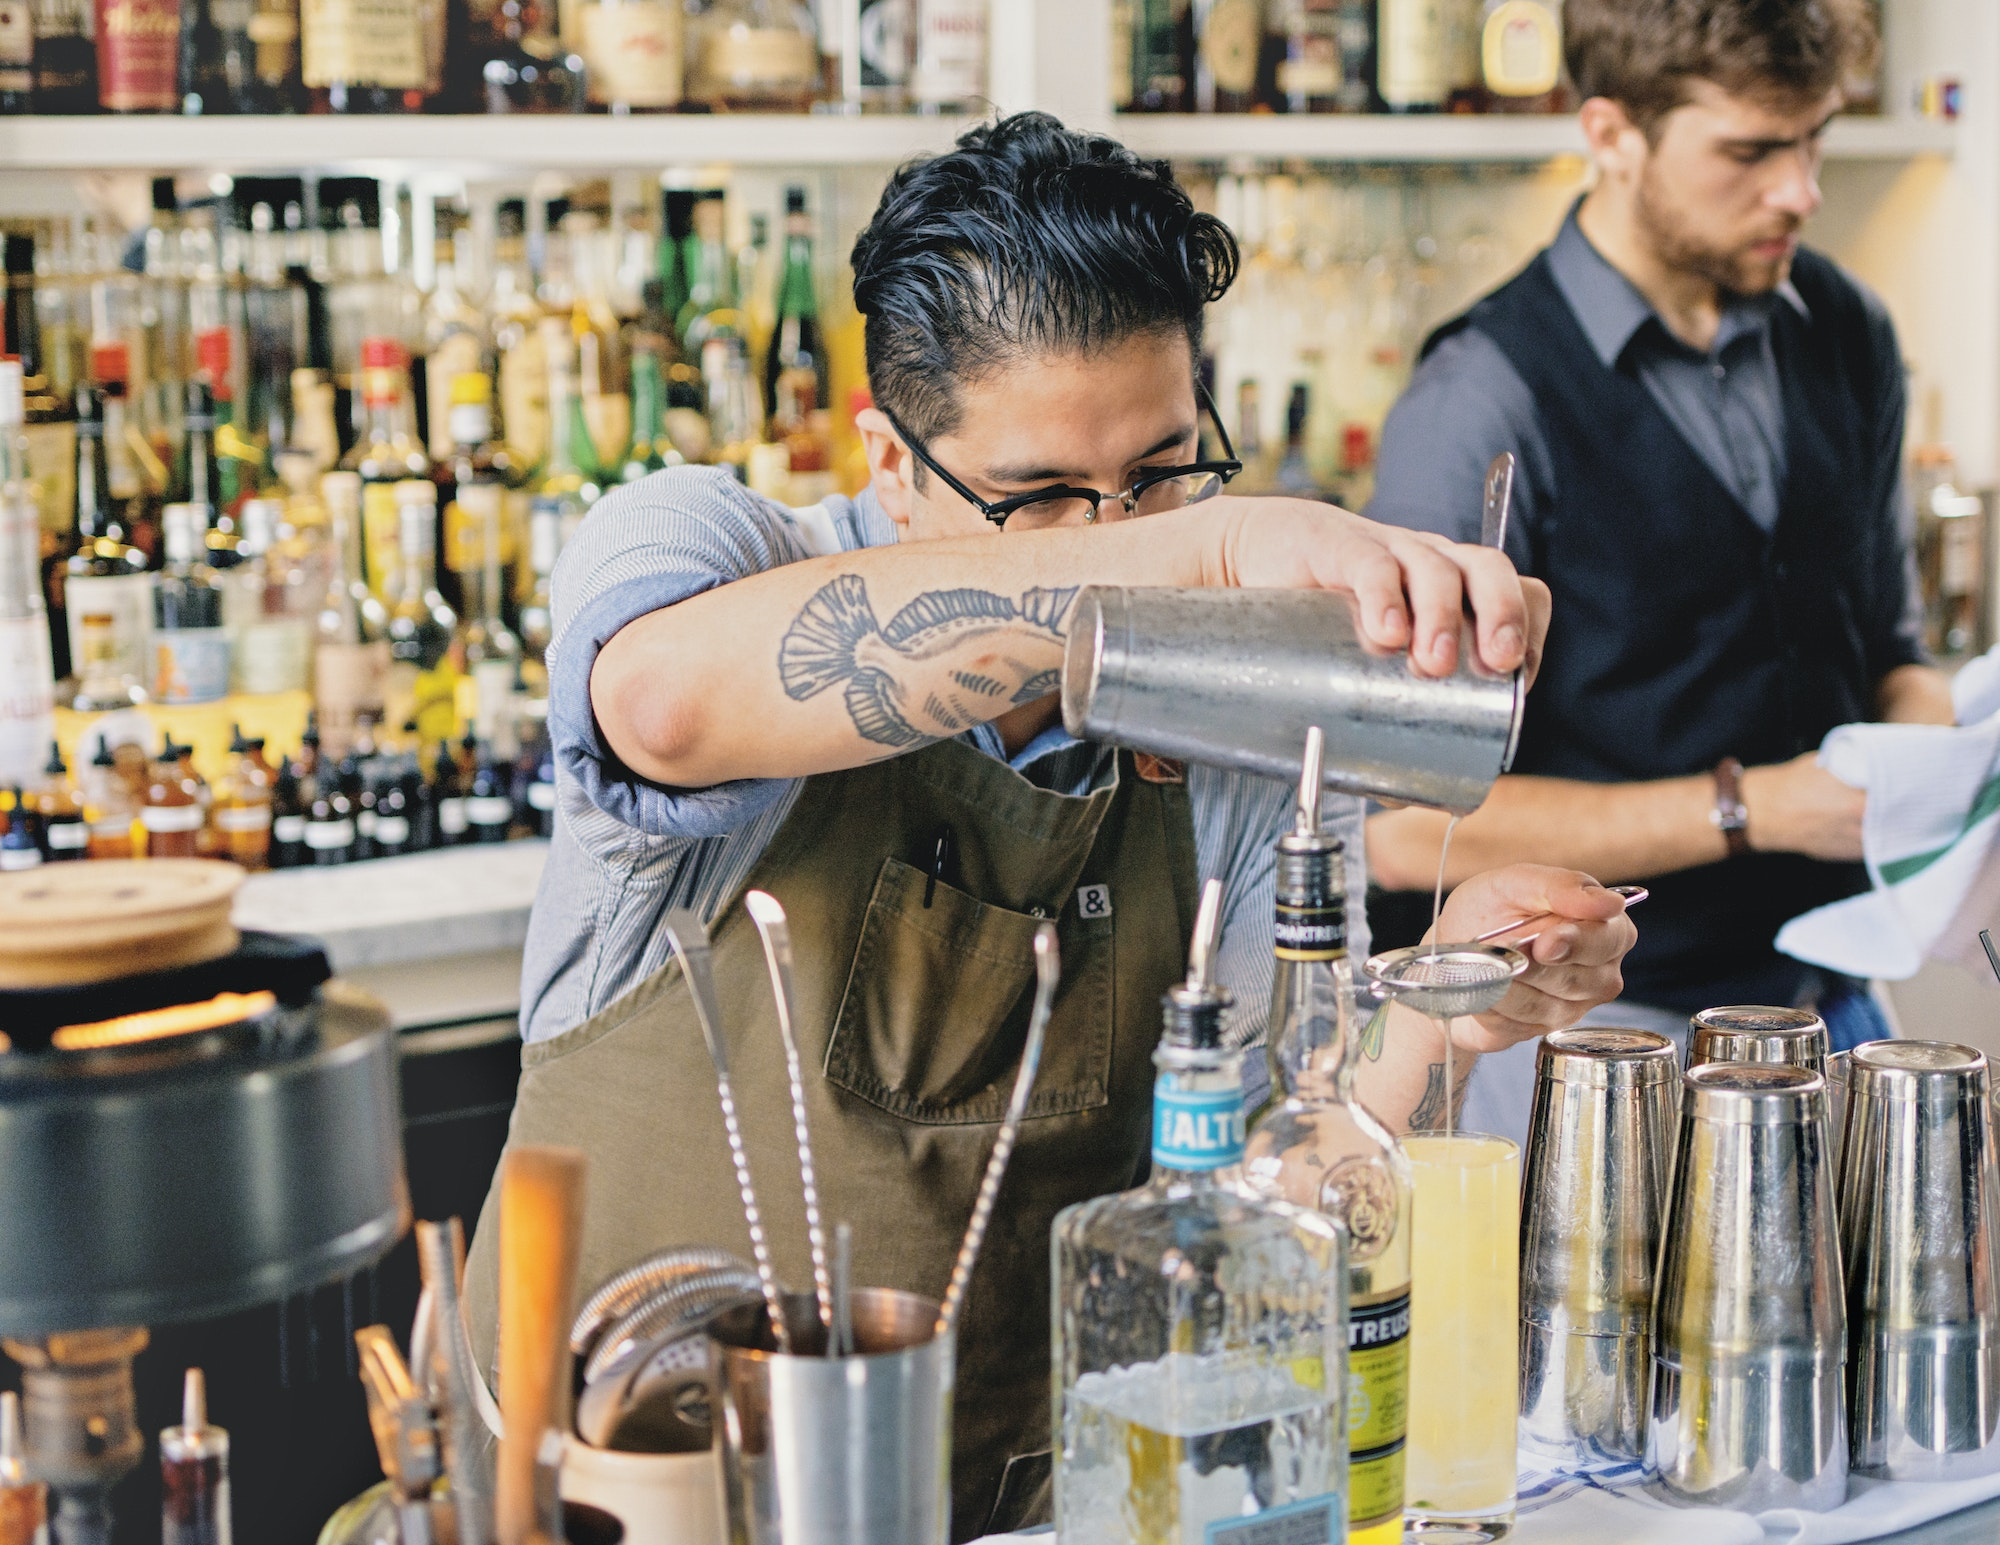 Bartenders at Spoon and Stable, another must-visit for cocktails in the Twin Cities